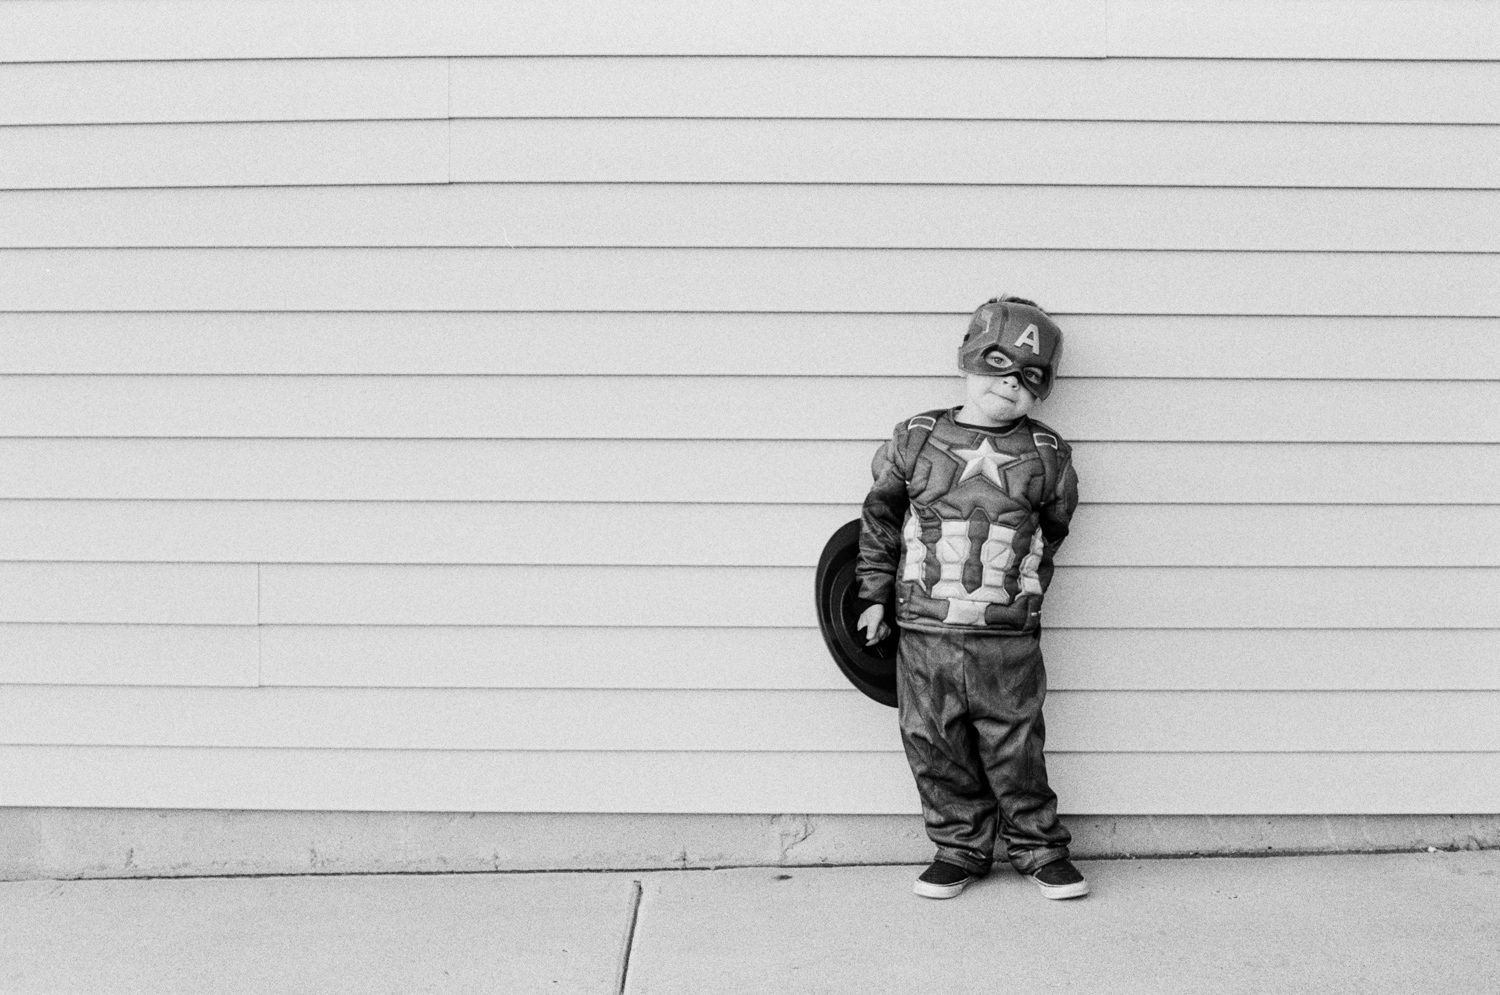 Boy outside by garage on Halloween posing for a film portrait.